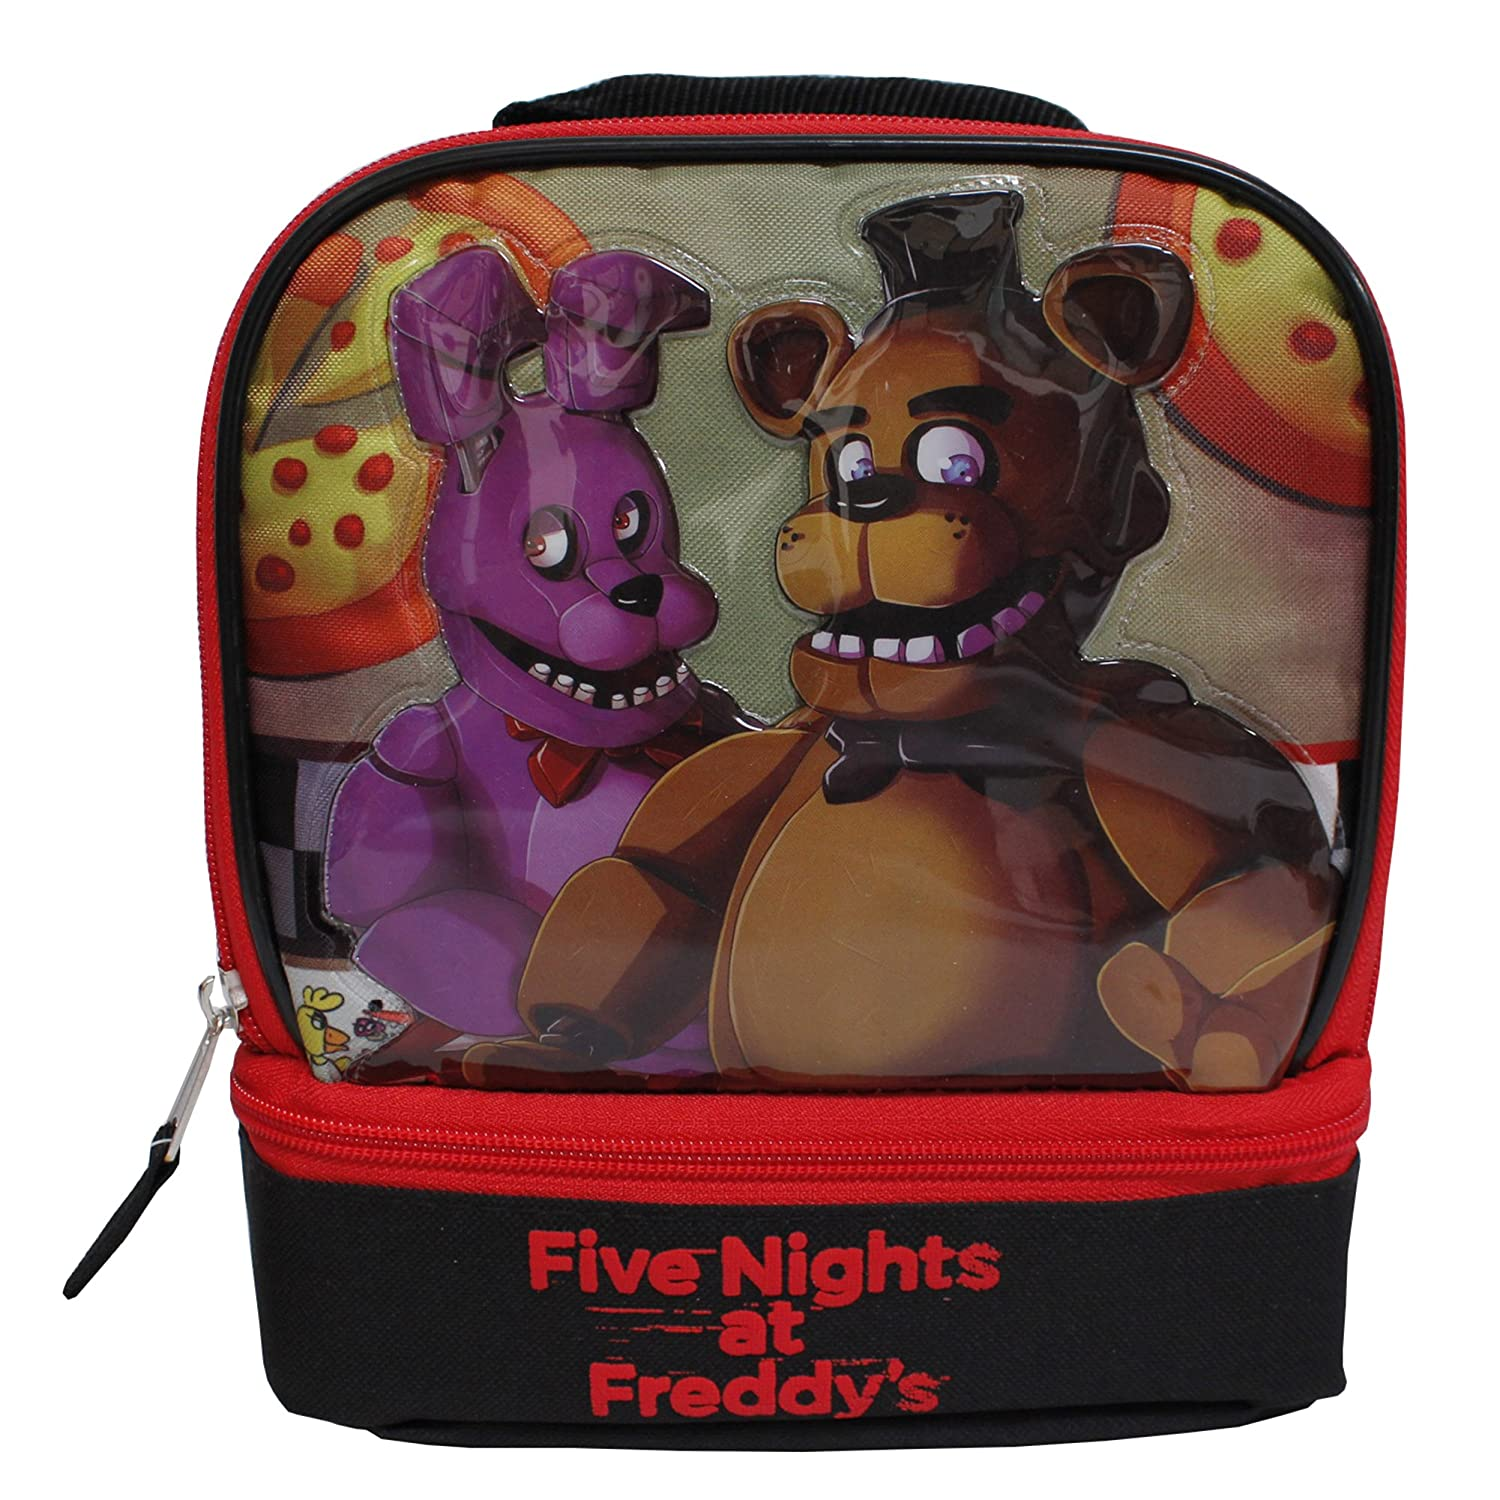 Five Nights At At At Freddy's - Bolso escolar con aislamiento, color negro y rojo b08c9a